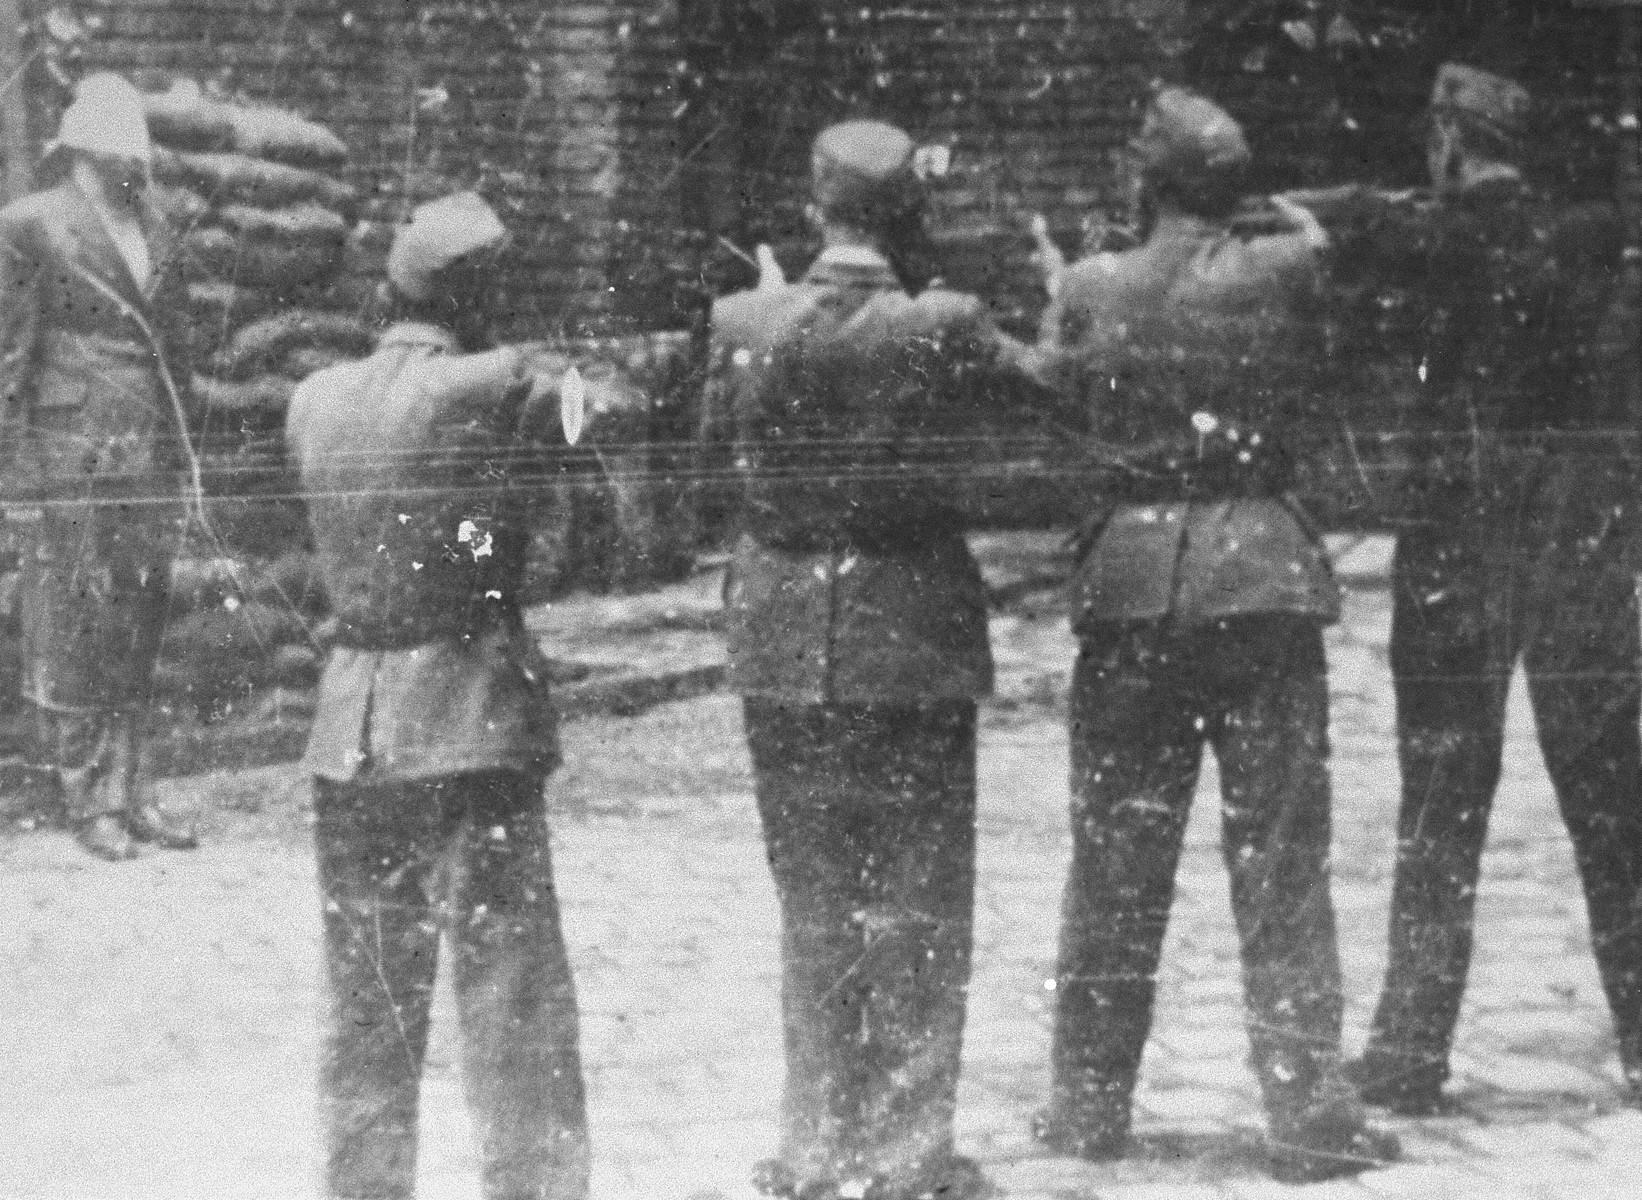 Hungarian troops prepare to execute Lajos Remenyi-Schneller.  Remenyi-Schneller was tried along with Dome Sztojay, Antal Kunder, Jeno Ratz, and Lajos Szasz by a People's Tribunal in the Budapest Academy of Music for his role in both the destruction of Hungarian Jewry and for sacrificing his country's interests by collaborating with the Third Reich.  The trial began on March 14, 1946 and ended only 8 days later on March 22, 1946 when all of the defendants were convicted, and subsequently executed.